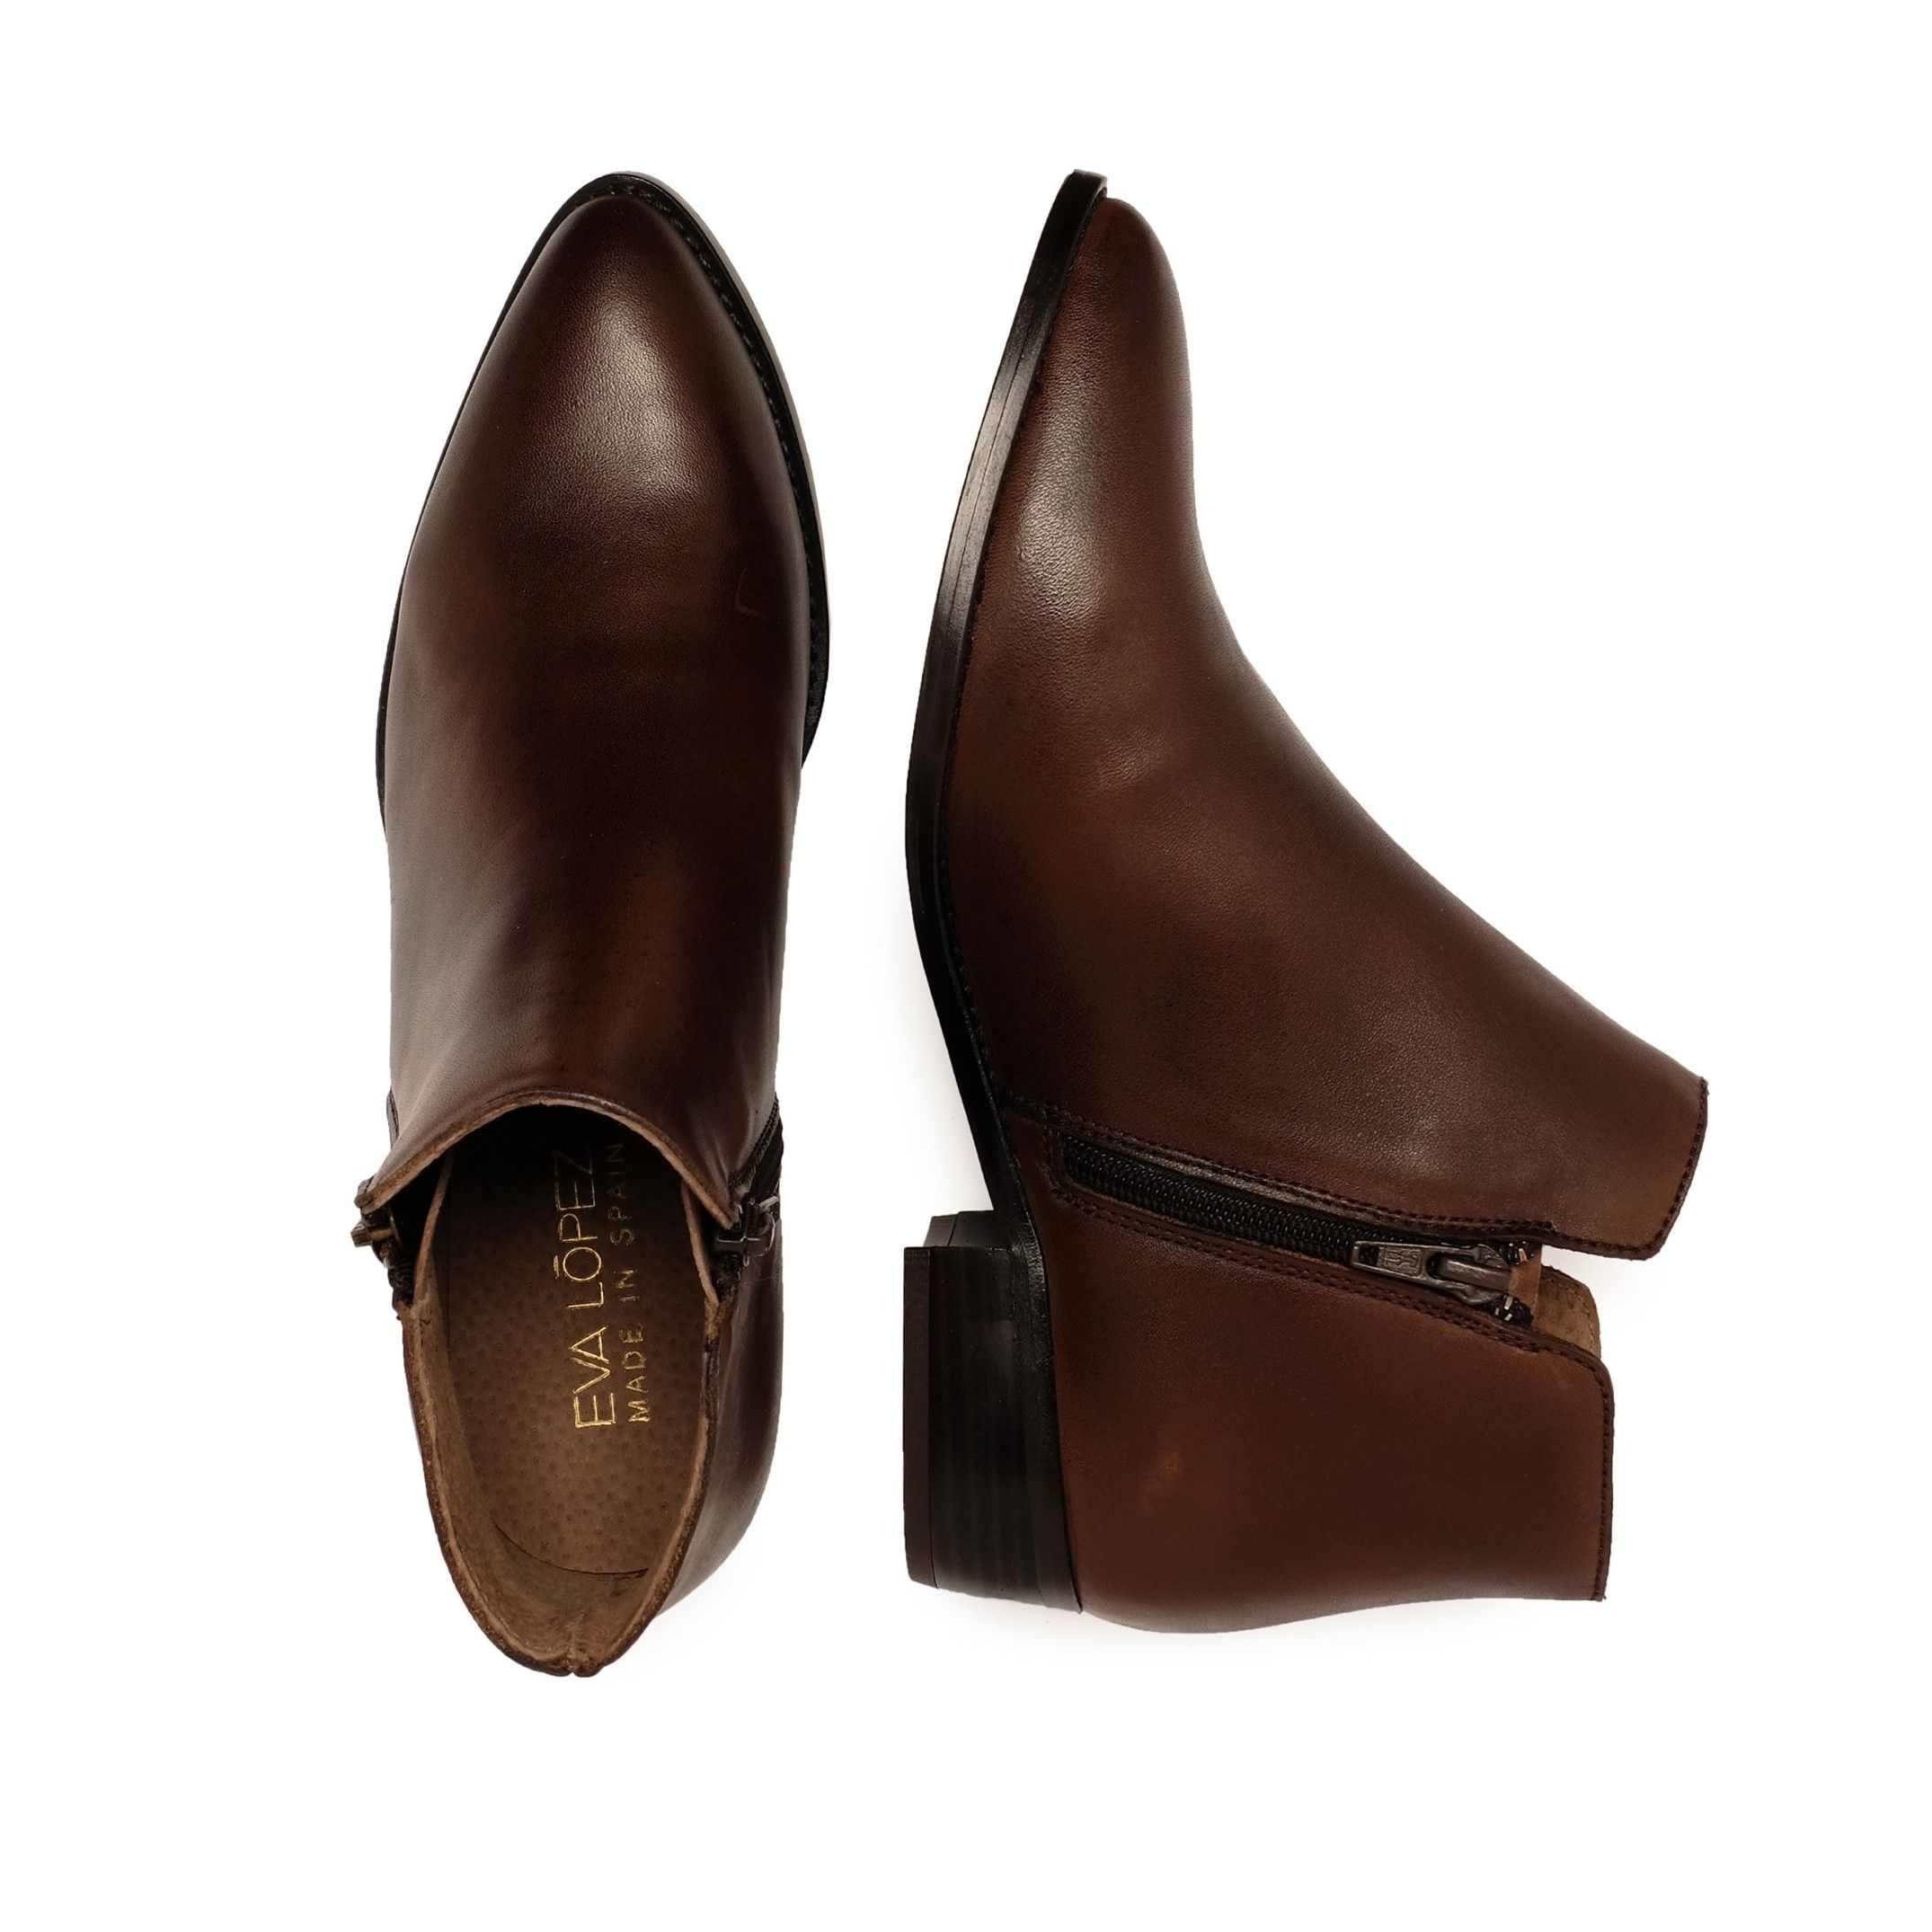 Eva López Leather Ankle Boots Brown Women's